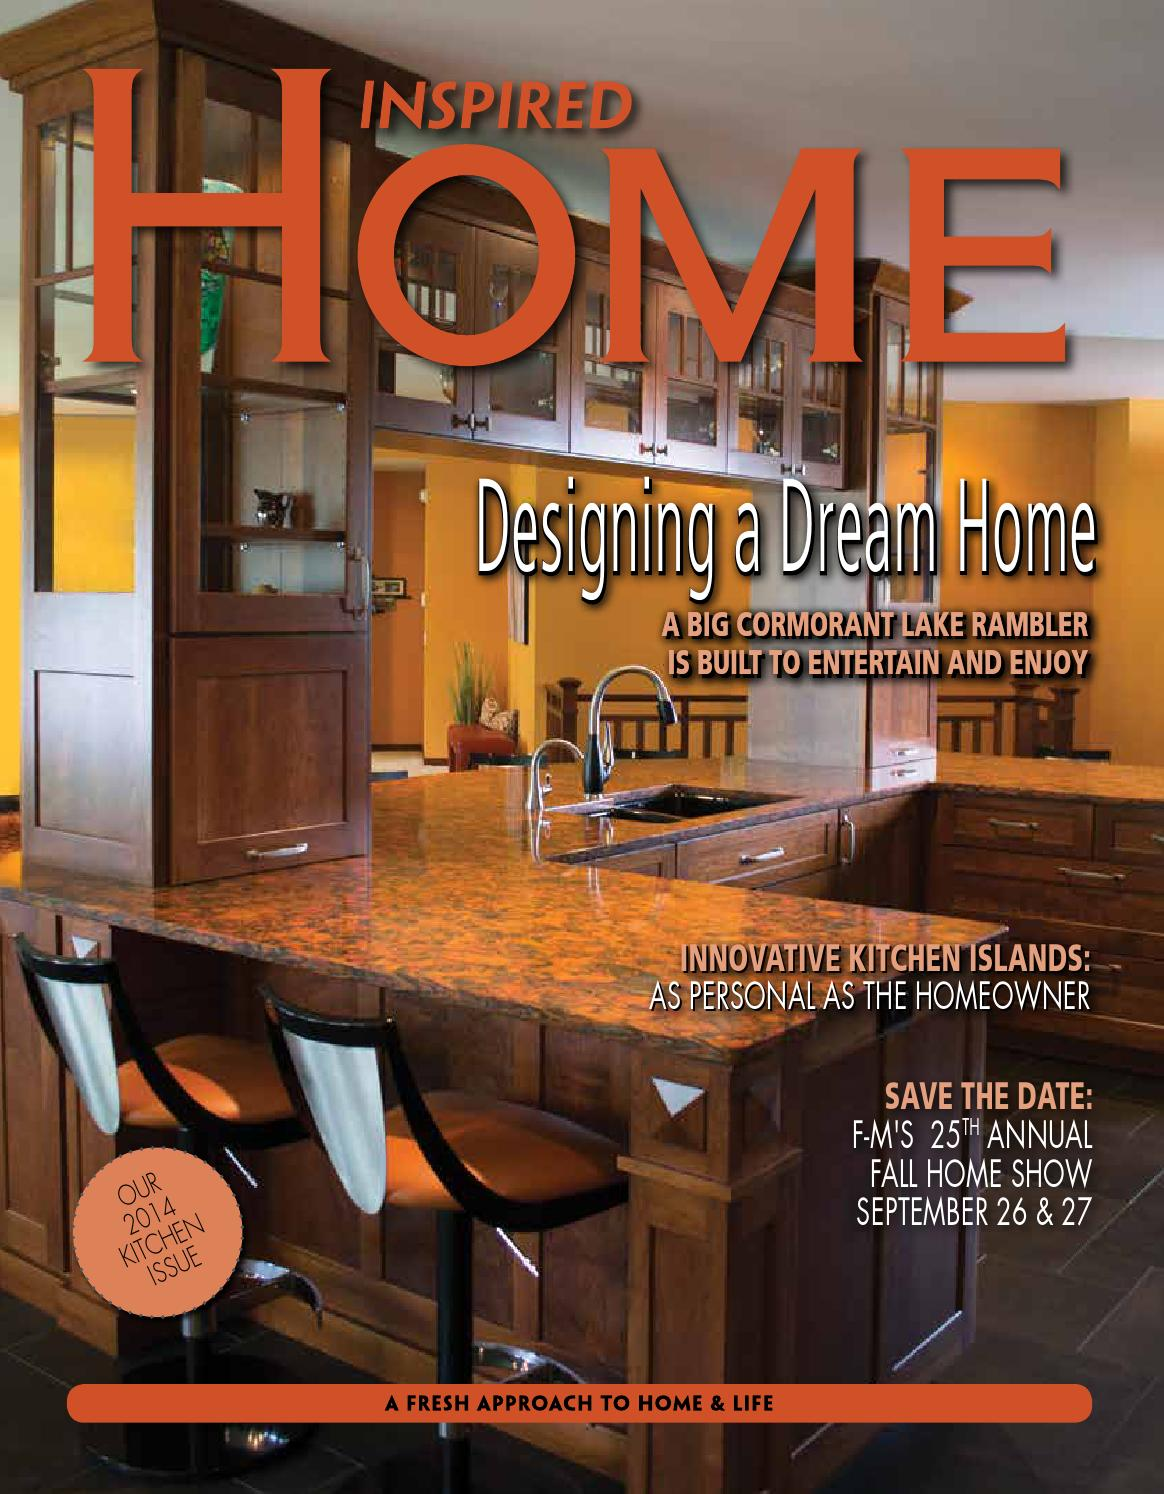 Inspired home magazine september october 2014 by Inspired ... on international house designs, cape cod house designs, smart house designs, standard house designs, tri-level house designs, ford house designs, acadian house designs, spirit house designs, sugar house designs, contemporary house designs, 2 story house designs, austin house designs, 3 story house designs, ranch house designs, maxwell house designs, star house designs, american house designs, colonial house designs,